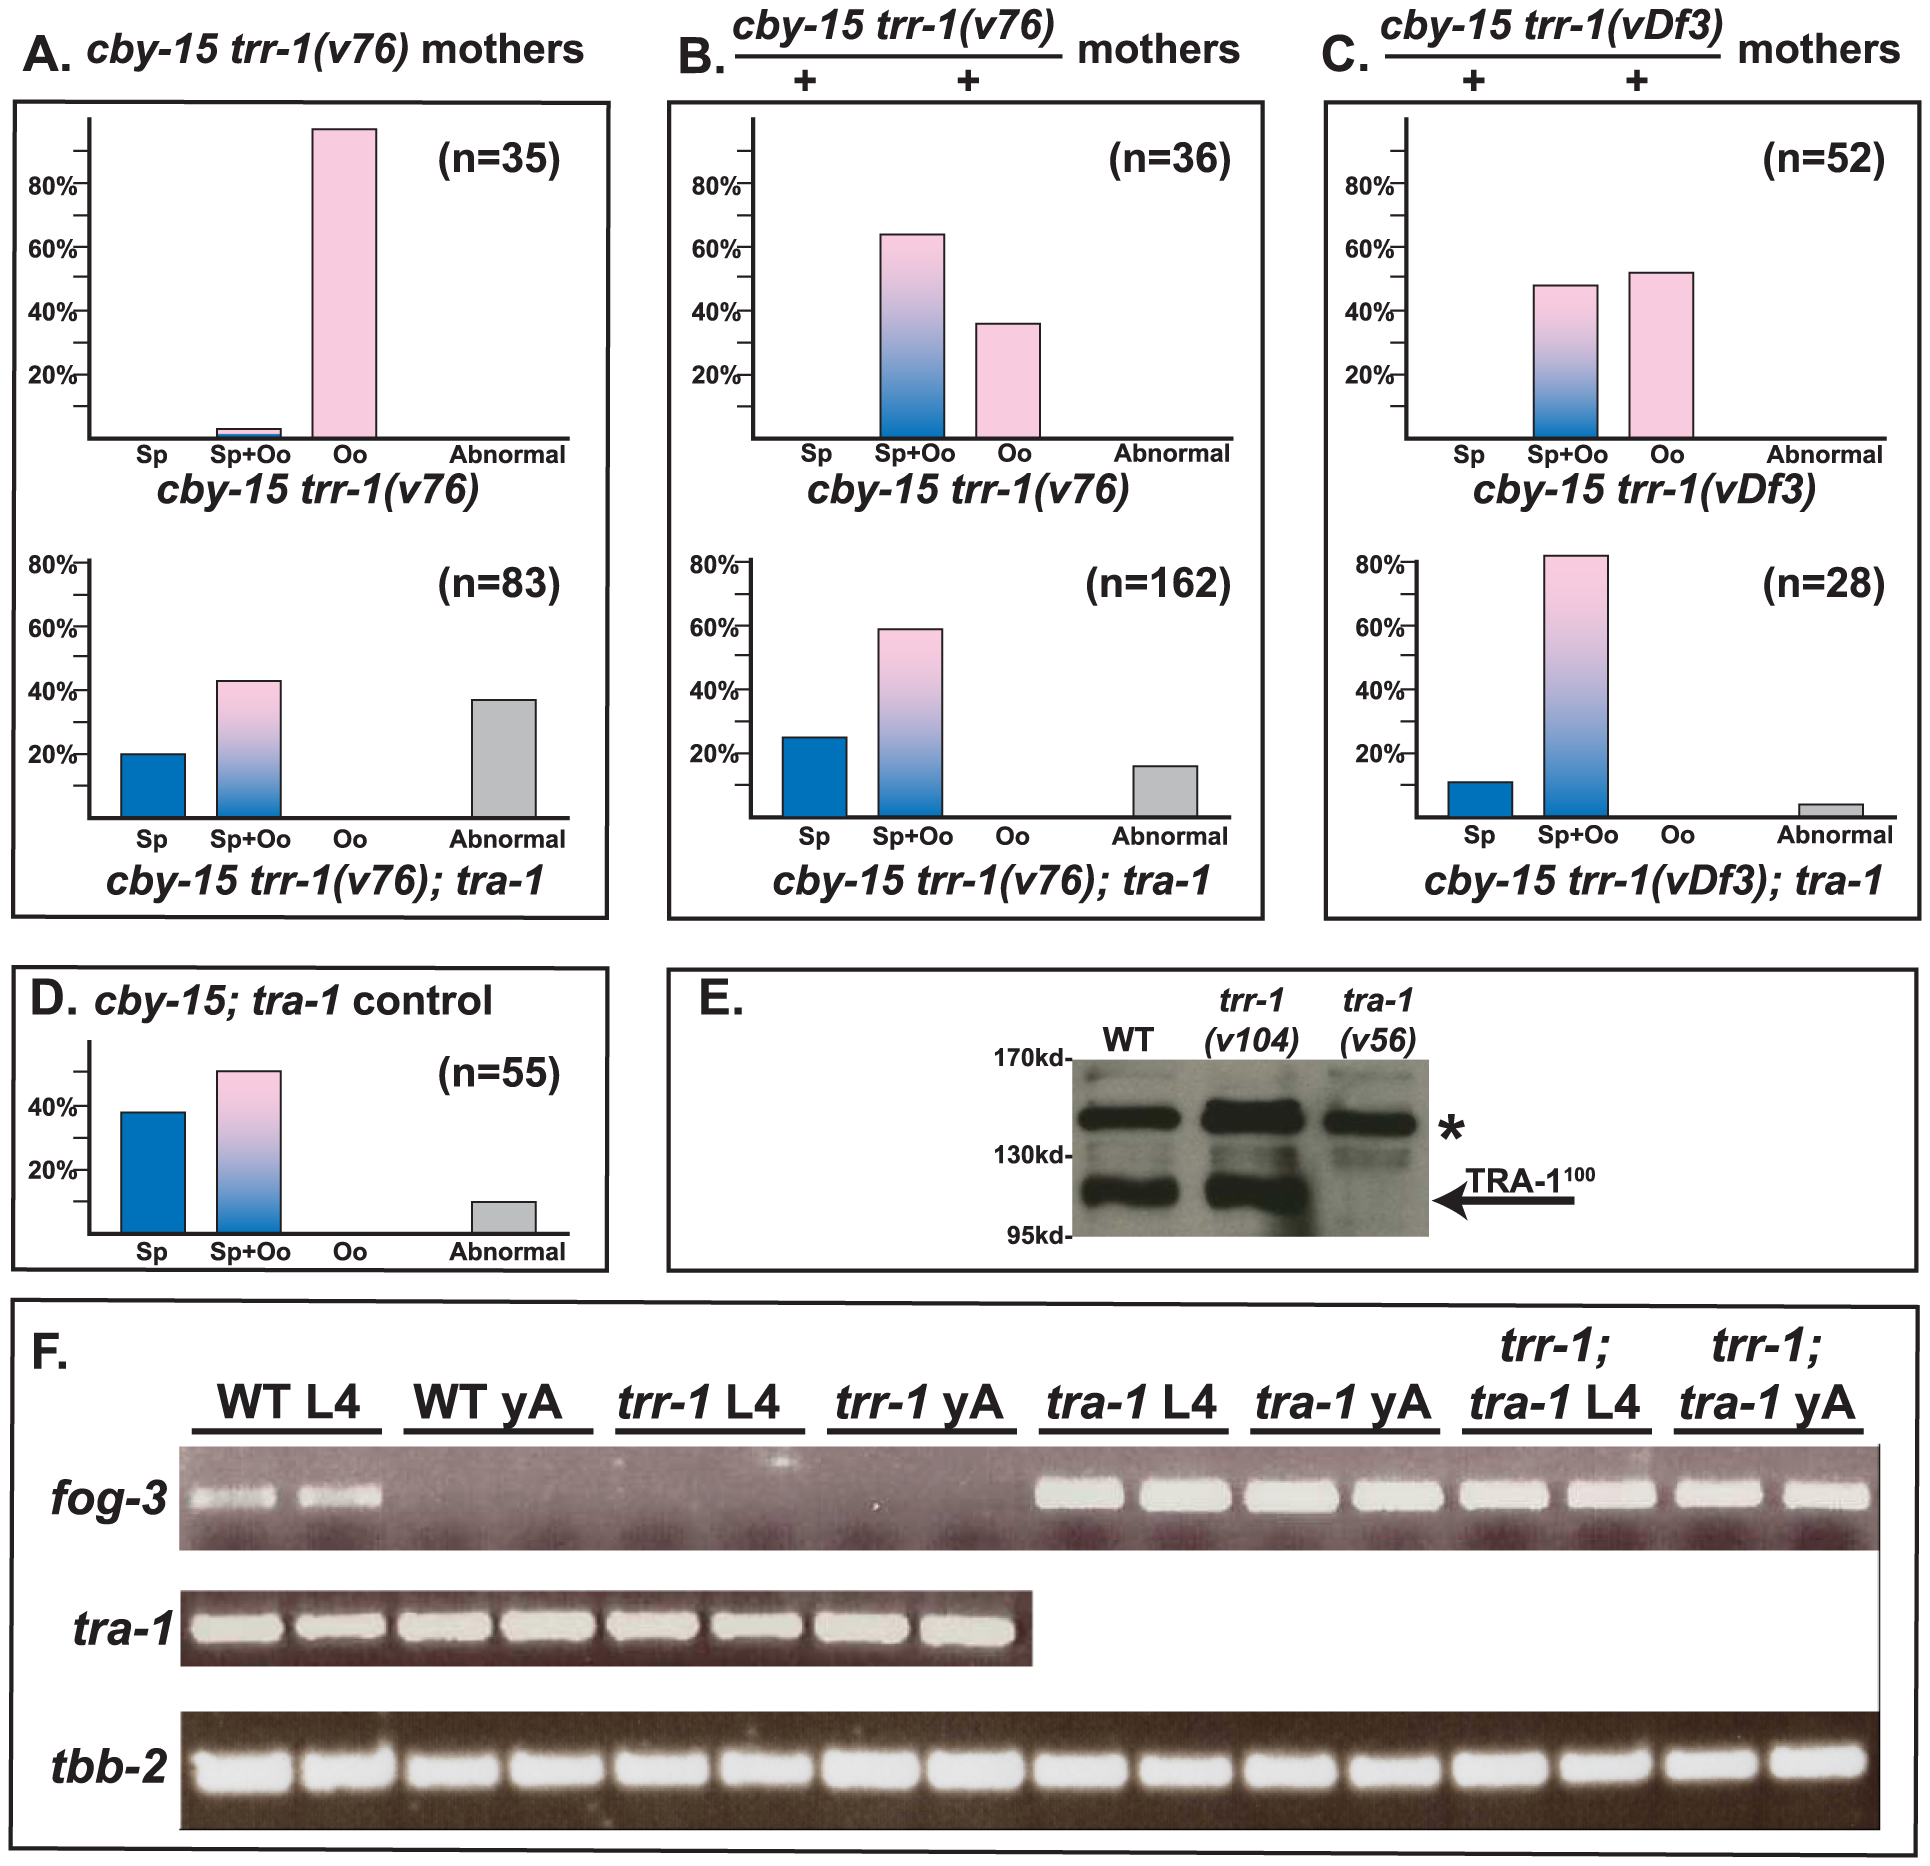 TRR-1 acts through TRA-1 to promote spermatogenesis and <i>fog-3</i> expression.